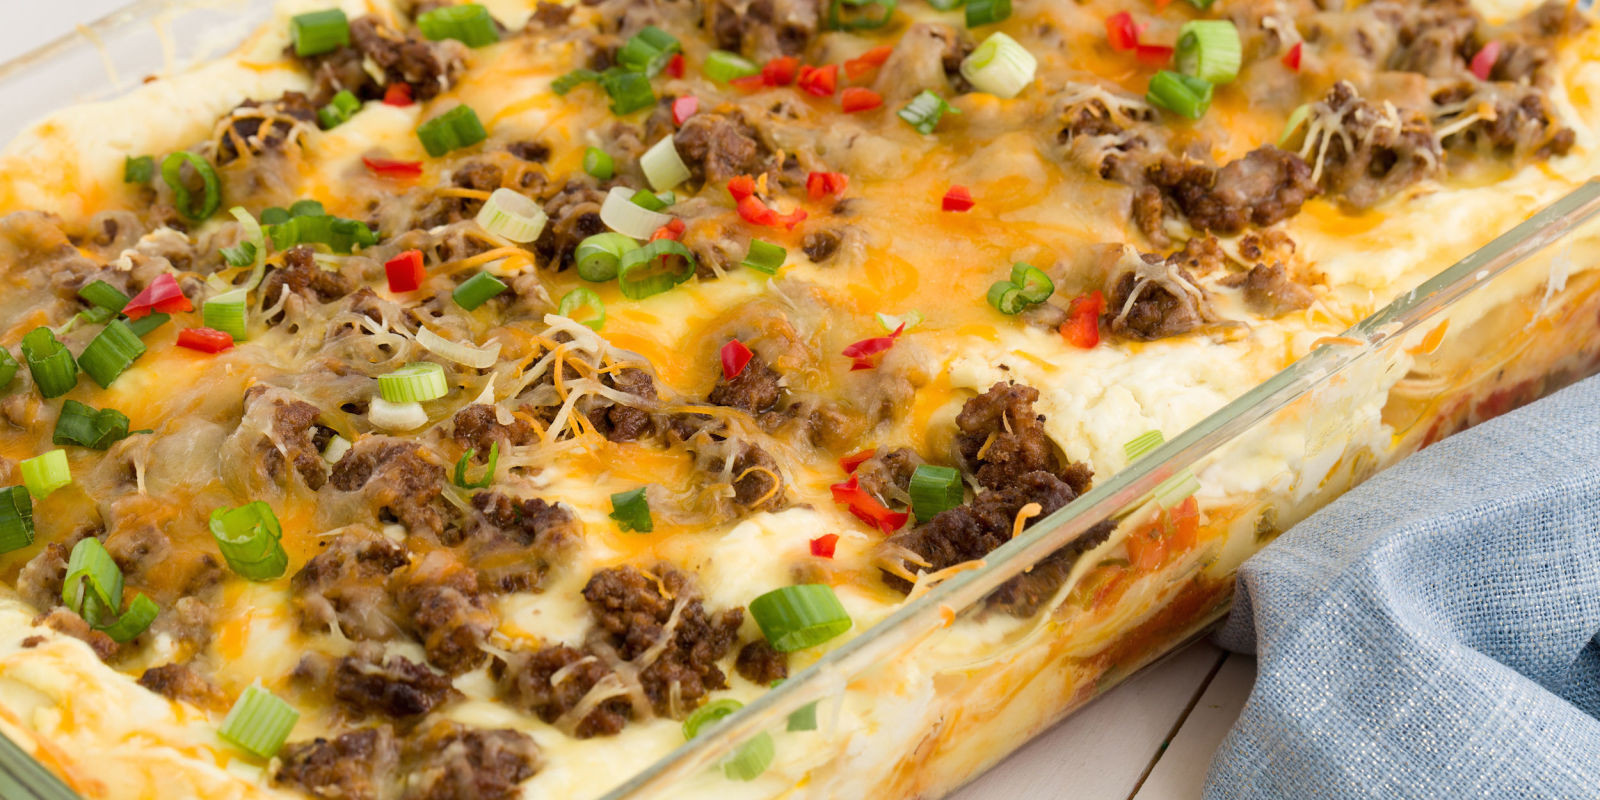 Mexican Food Recipes With Pictures  Best Cheesy Taco Lasagna Recipe How to Make Cheesy Taco